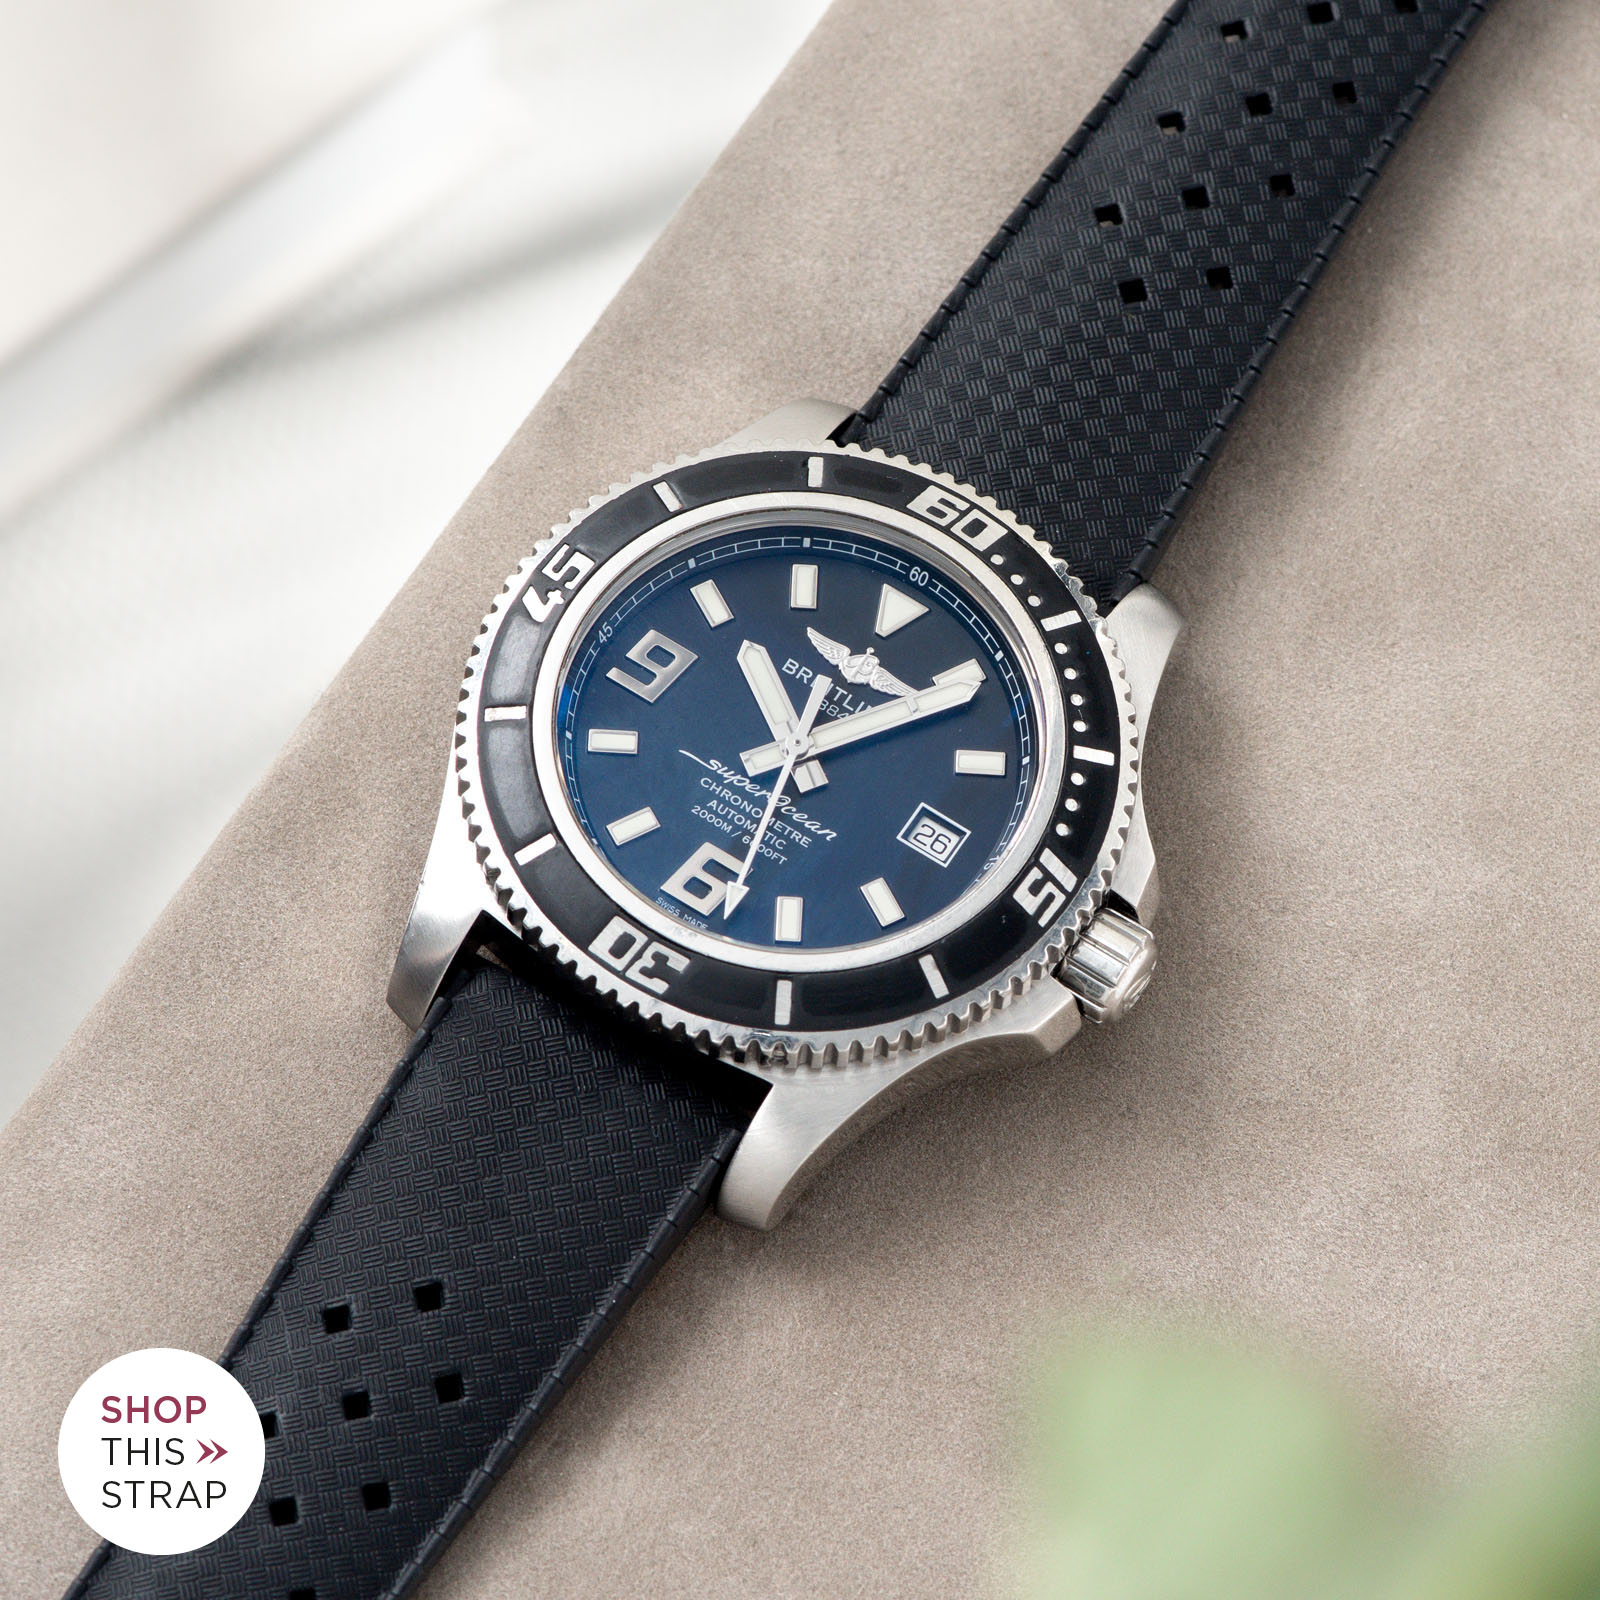 Bulang and Sons_Strap Guide_Breitling Superocean_Nautic Basket Weave Black Rubber Watch Strap